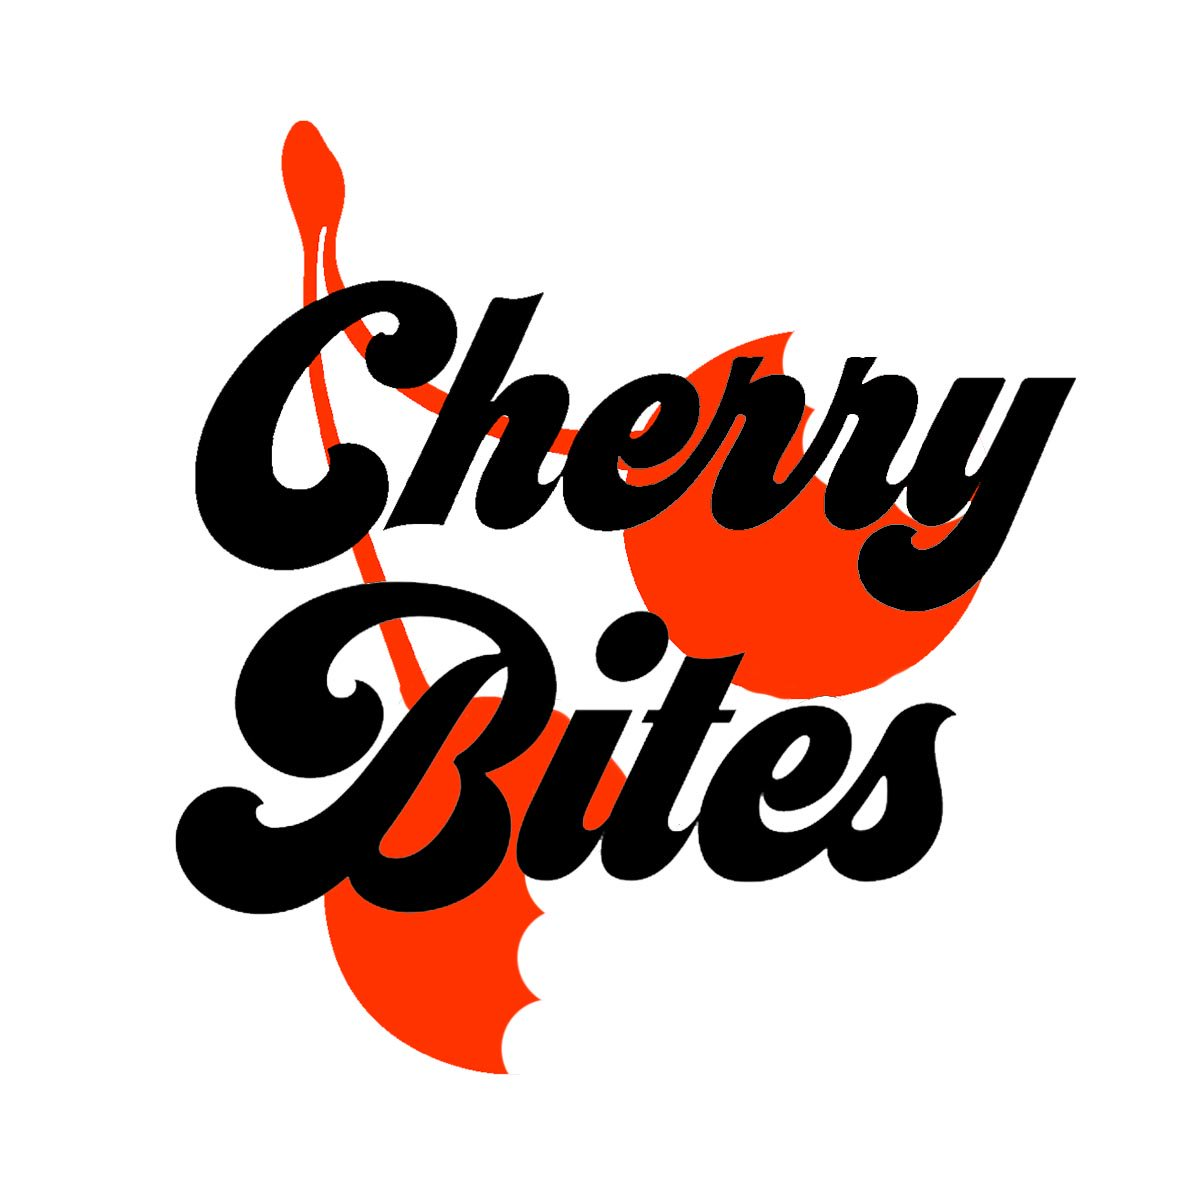 Sign up to get some CherryBites every other Wednesday starting March 14th! You'll get reviews, ratings, interviews and more, all from a female critical POV. And you'll be the first to know when our full site launches. cherrypicksreviews.com